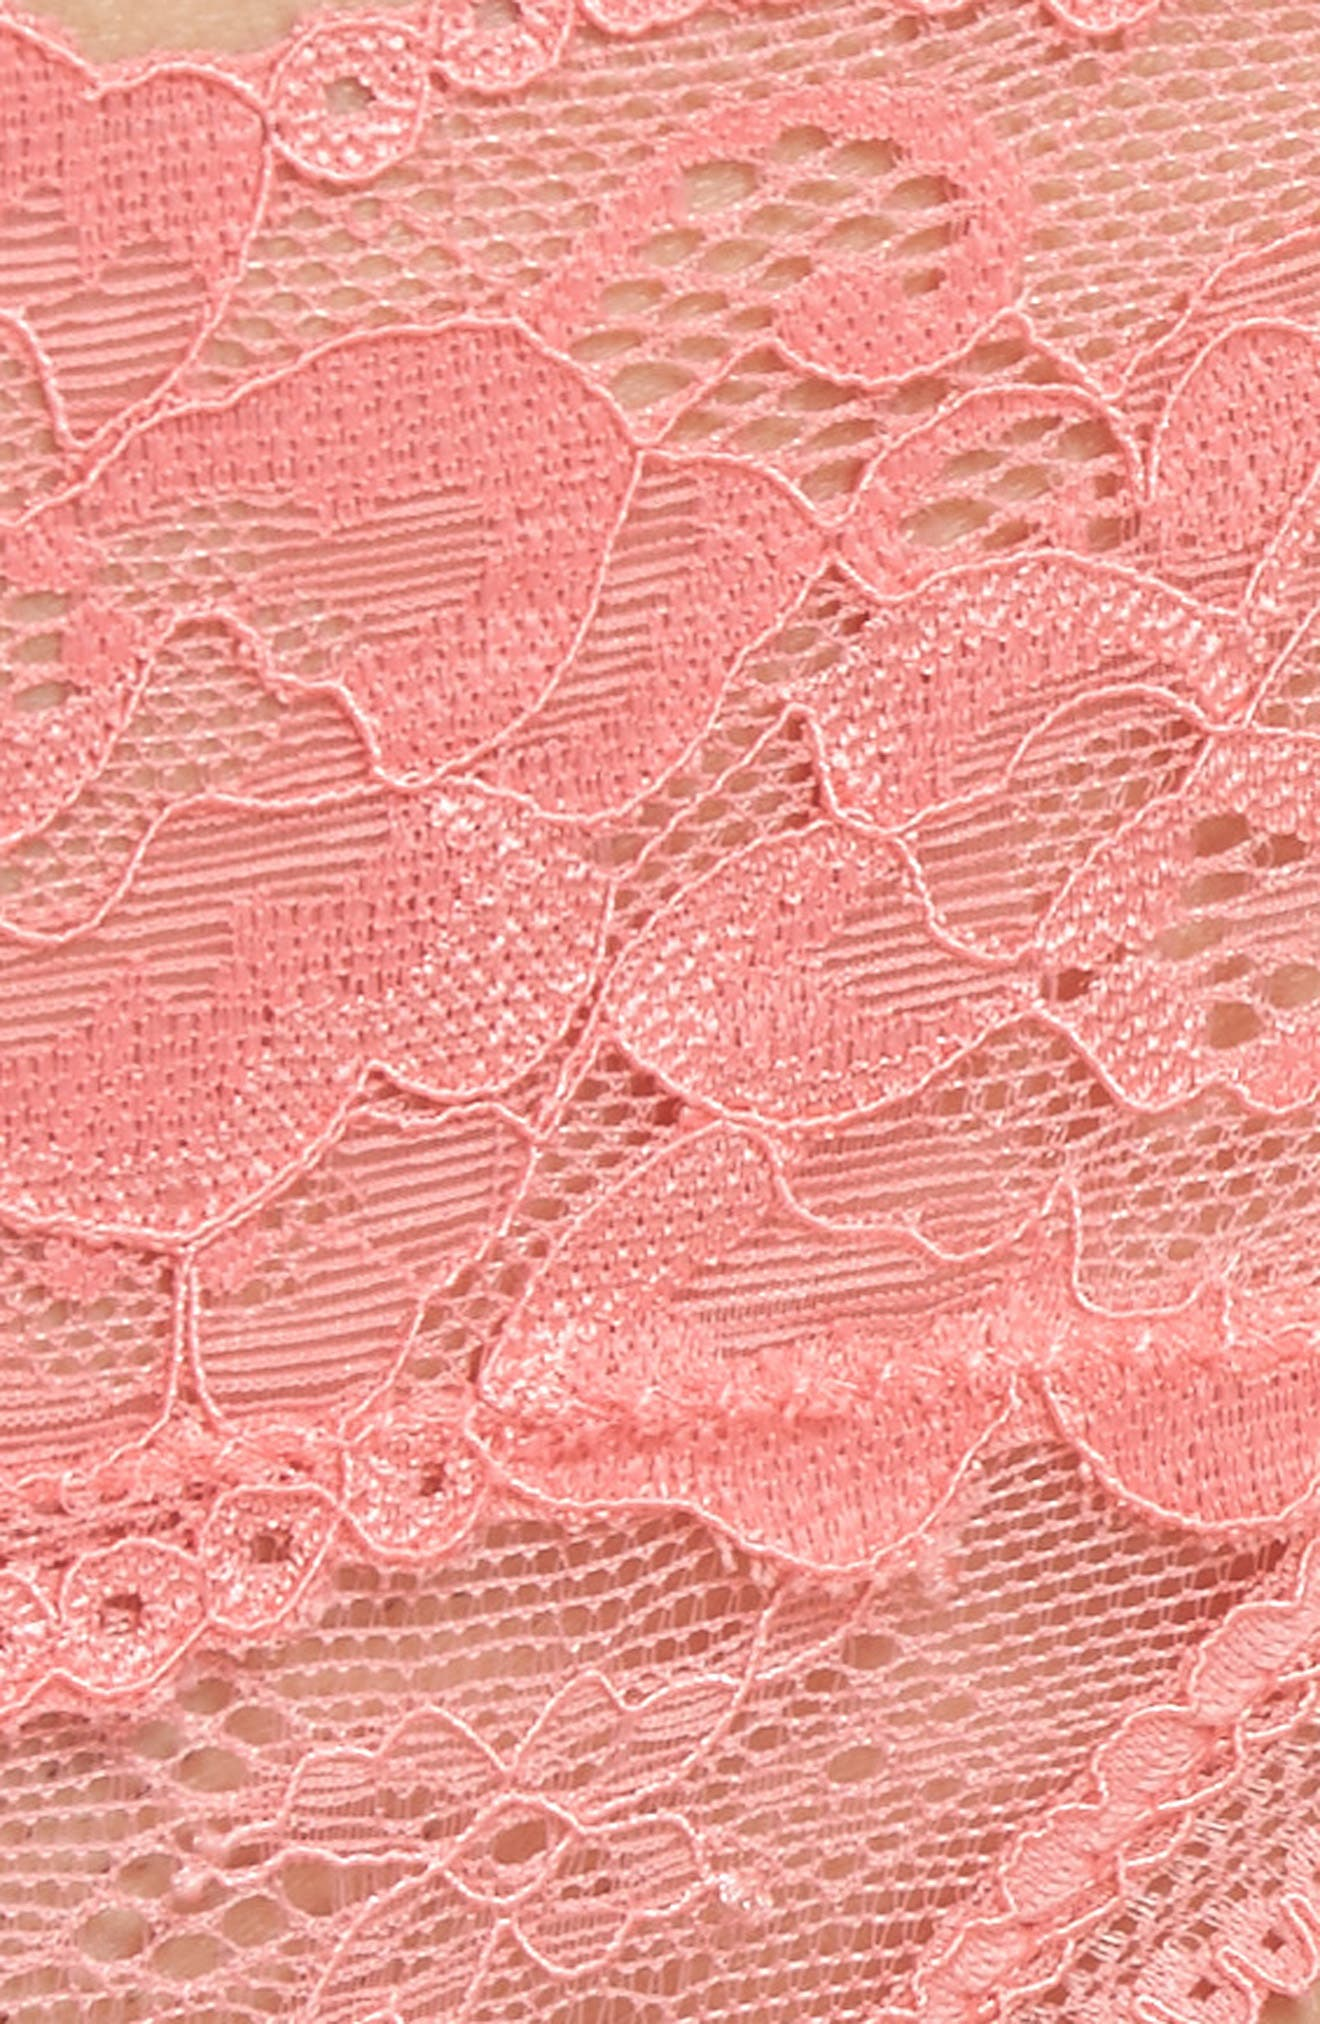 Honeydew Lace Thong,                             Alternate thumbnail 75, color,